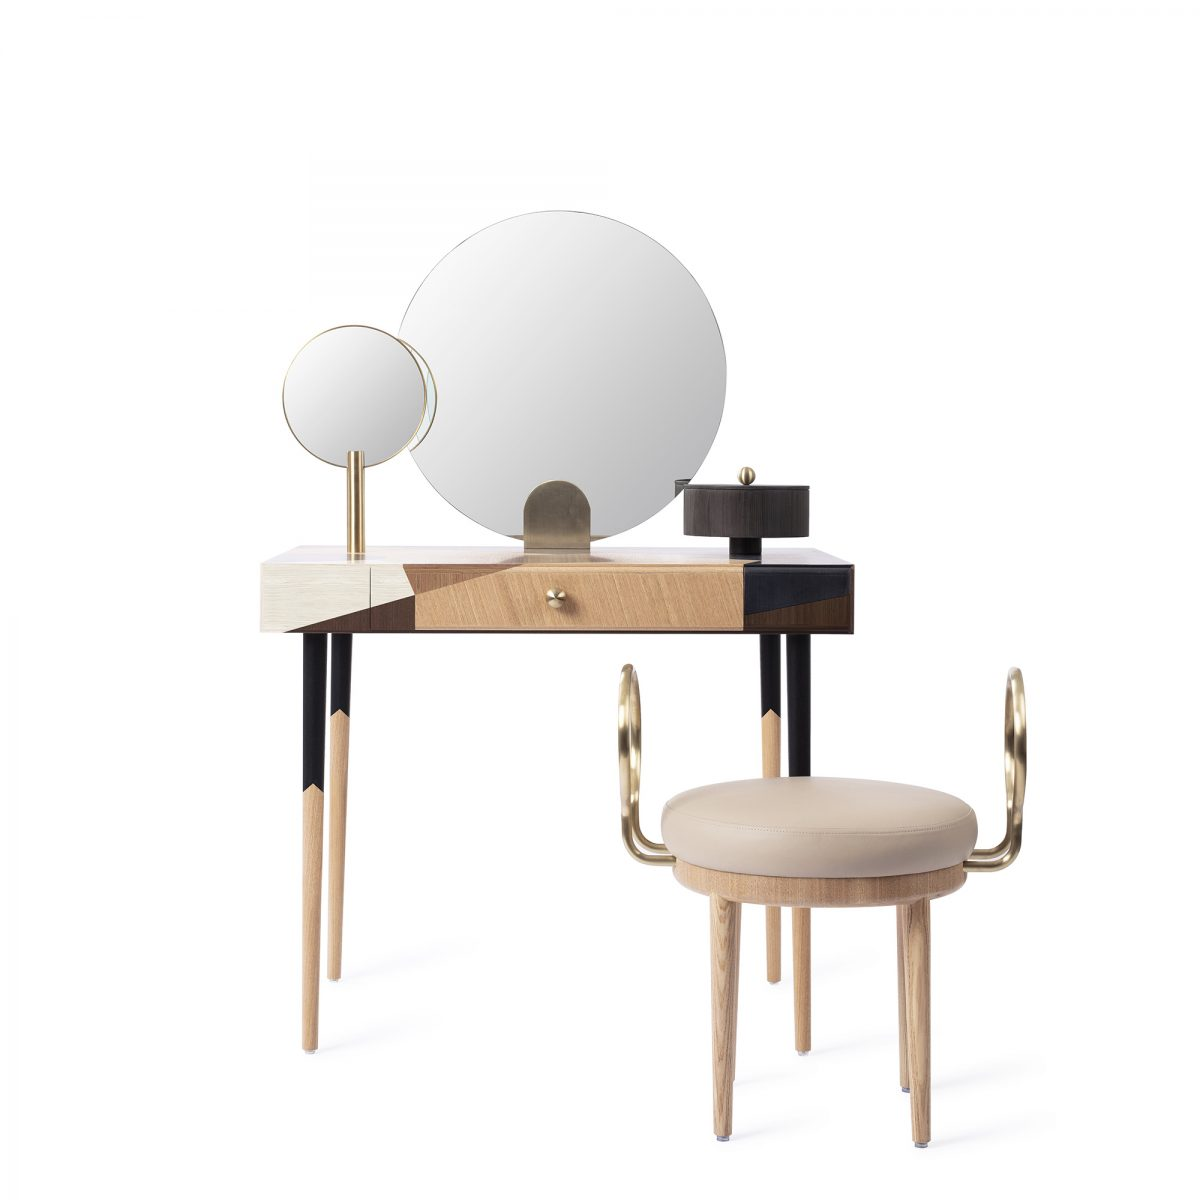 1-maison-dada-rose-selavy-stool-buffets&cabinets-writing-desks-marquetry front